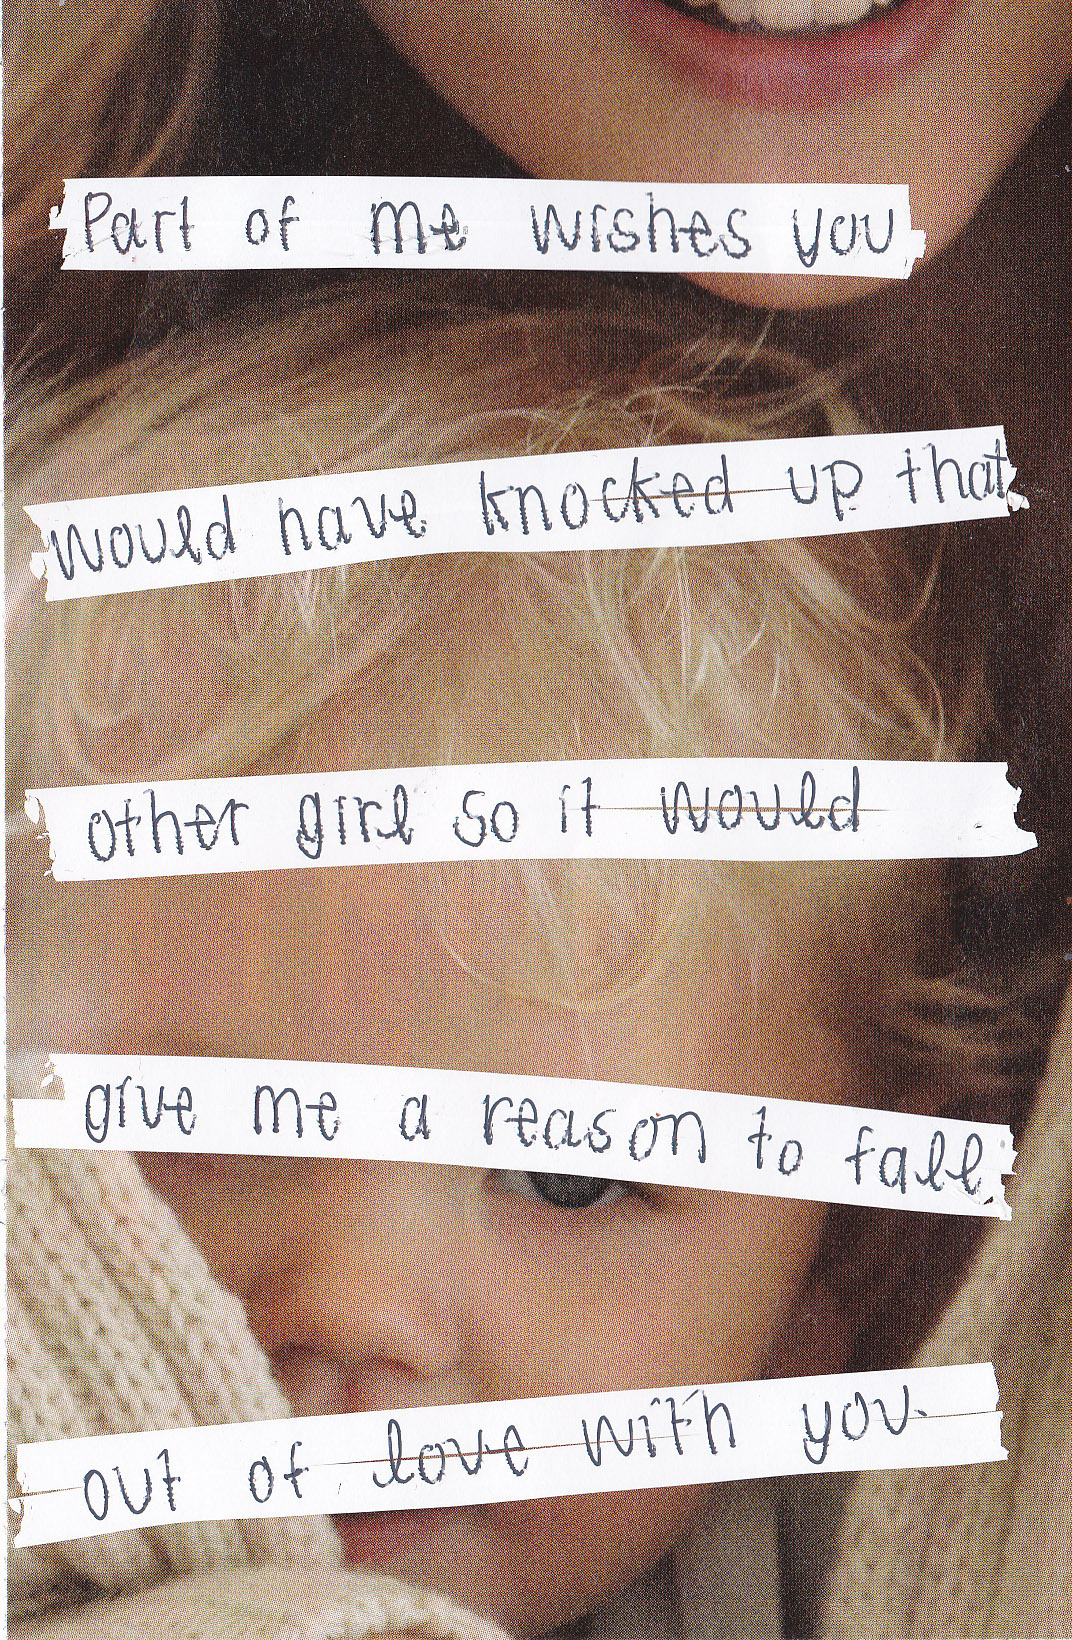 "posttsecret:  ""Part of me wishes you would have knocked up that other girl so it would give me a reason to fall out of love with you."""